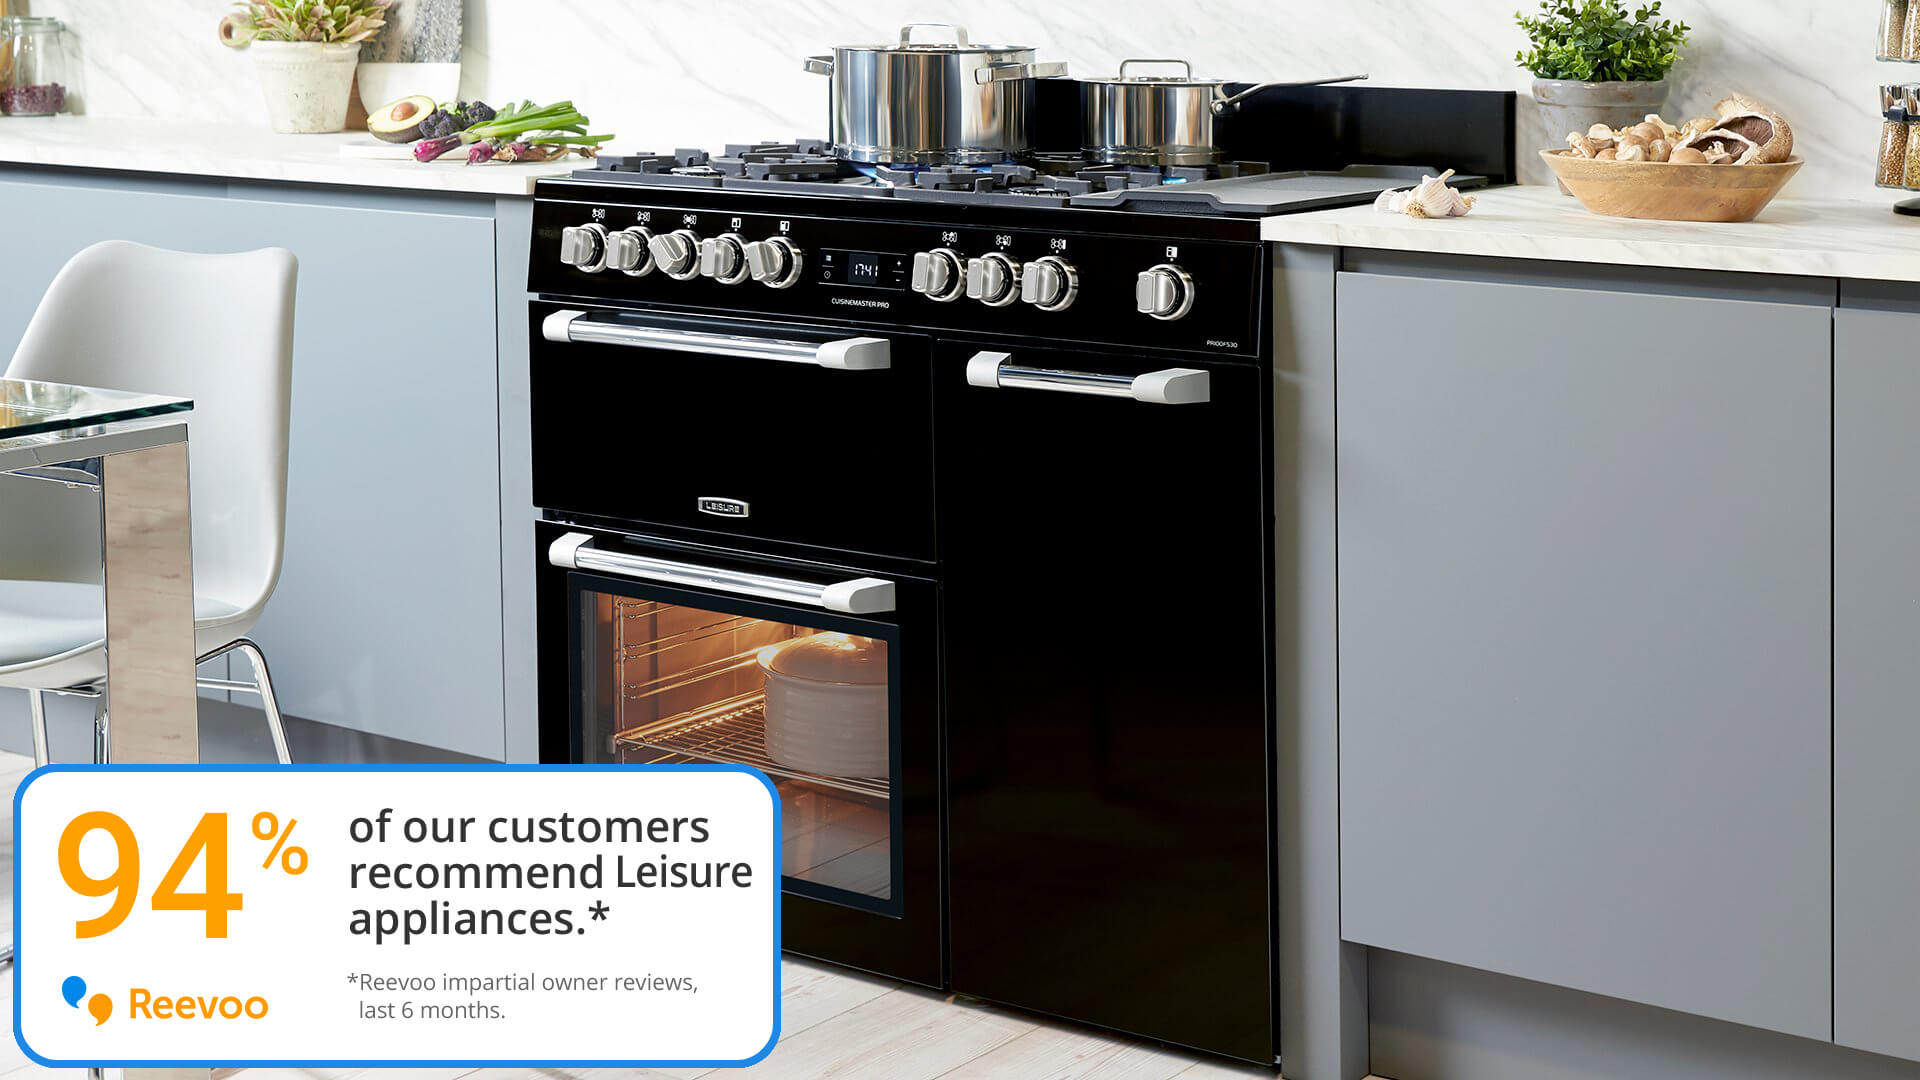 Recommended by 94% of our customers.